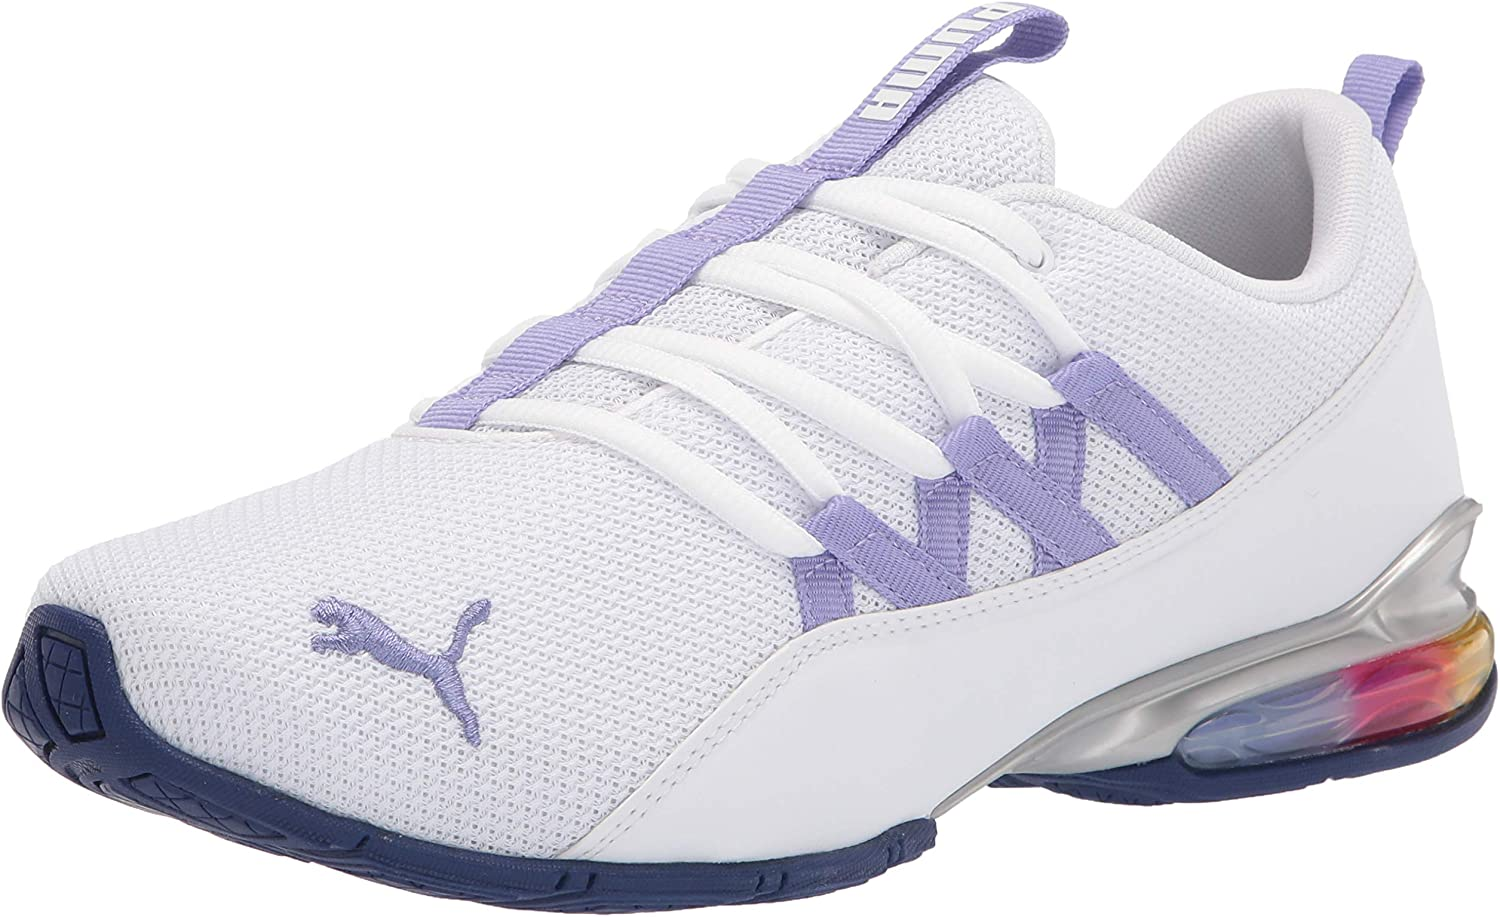 Clearance SALE! Limited time! Ranking TOP16 PUMA Women's 19499501 Running Shoe